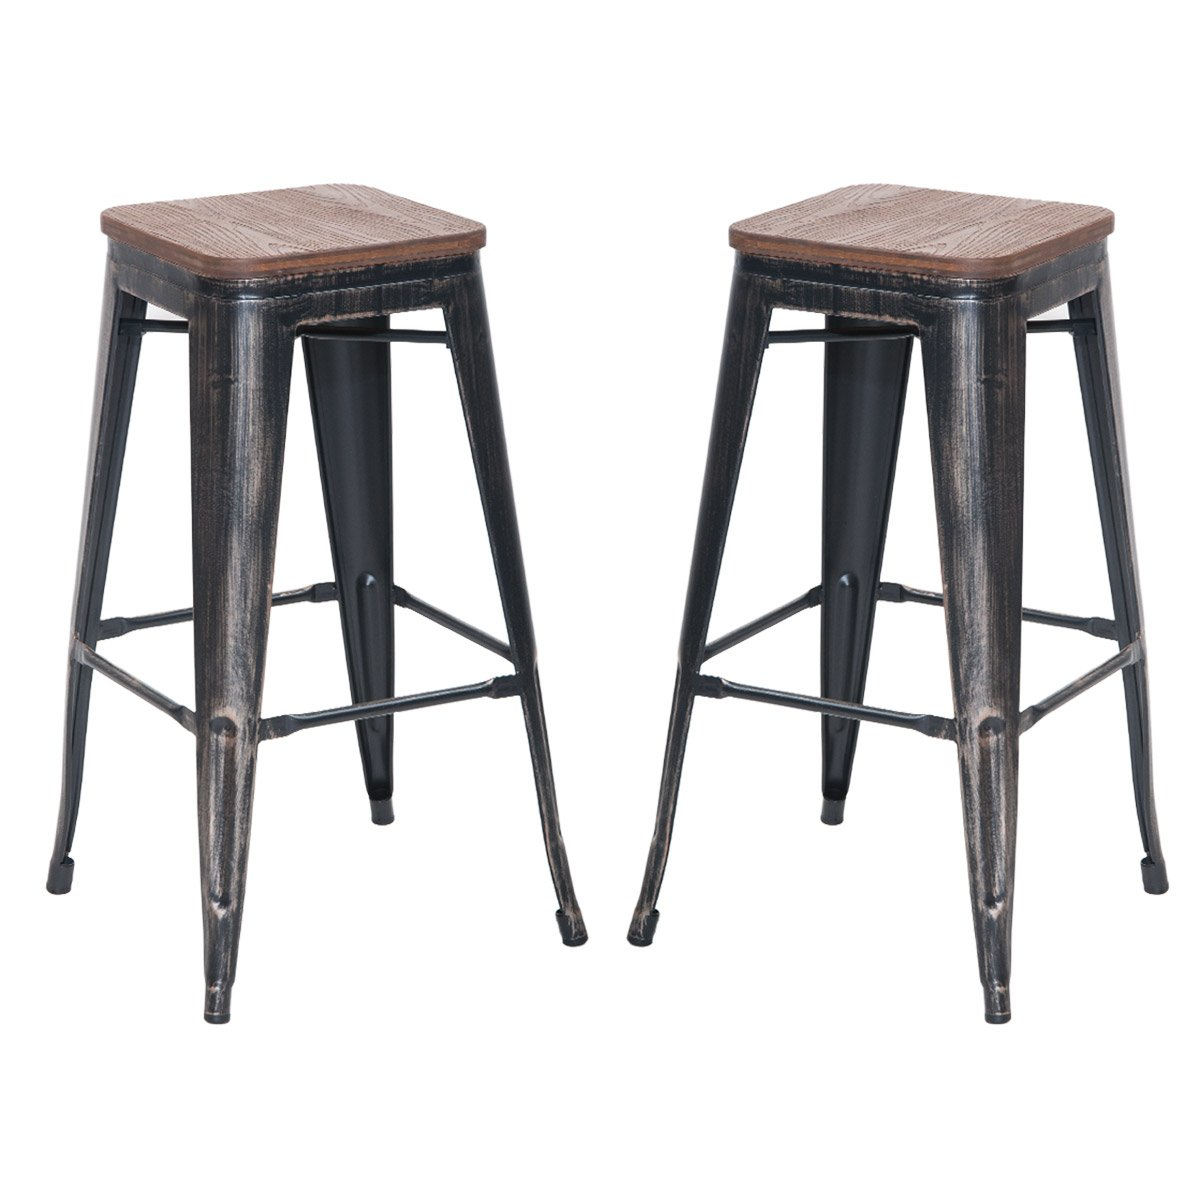 Merax 30'' High Backless Metal Indoor-Outdoor Bar Stool with Wooden Seat, Set of 2 (Distressed Black)